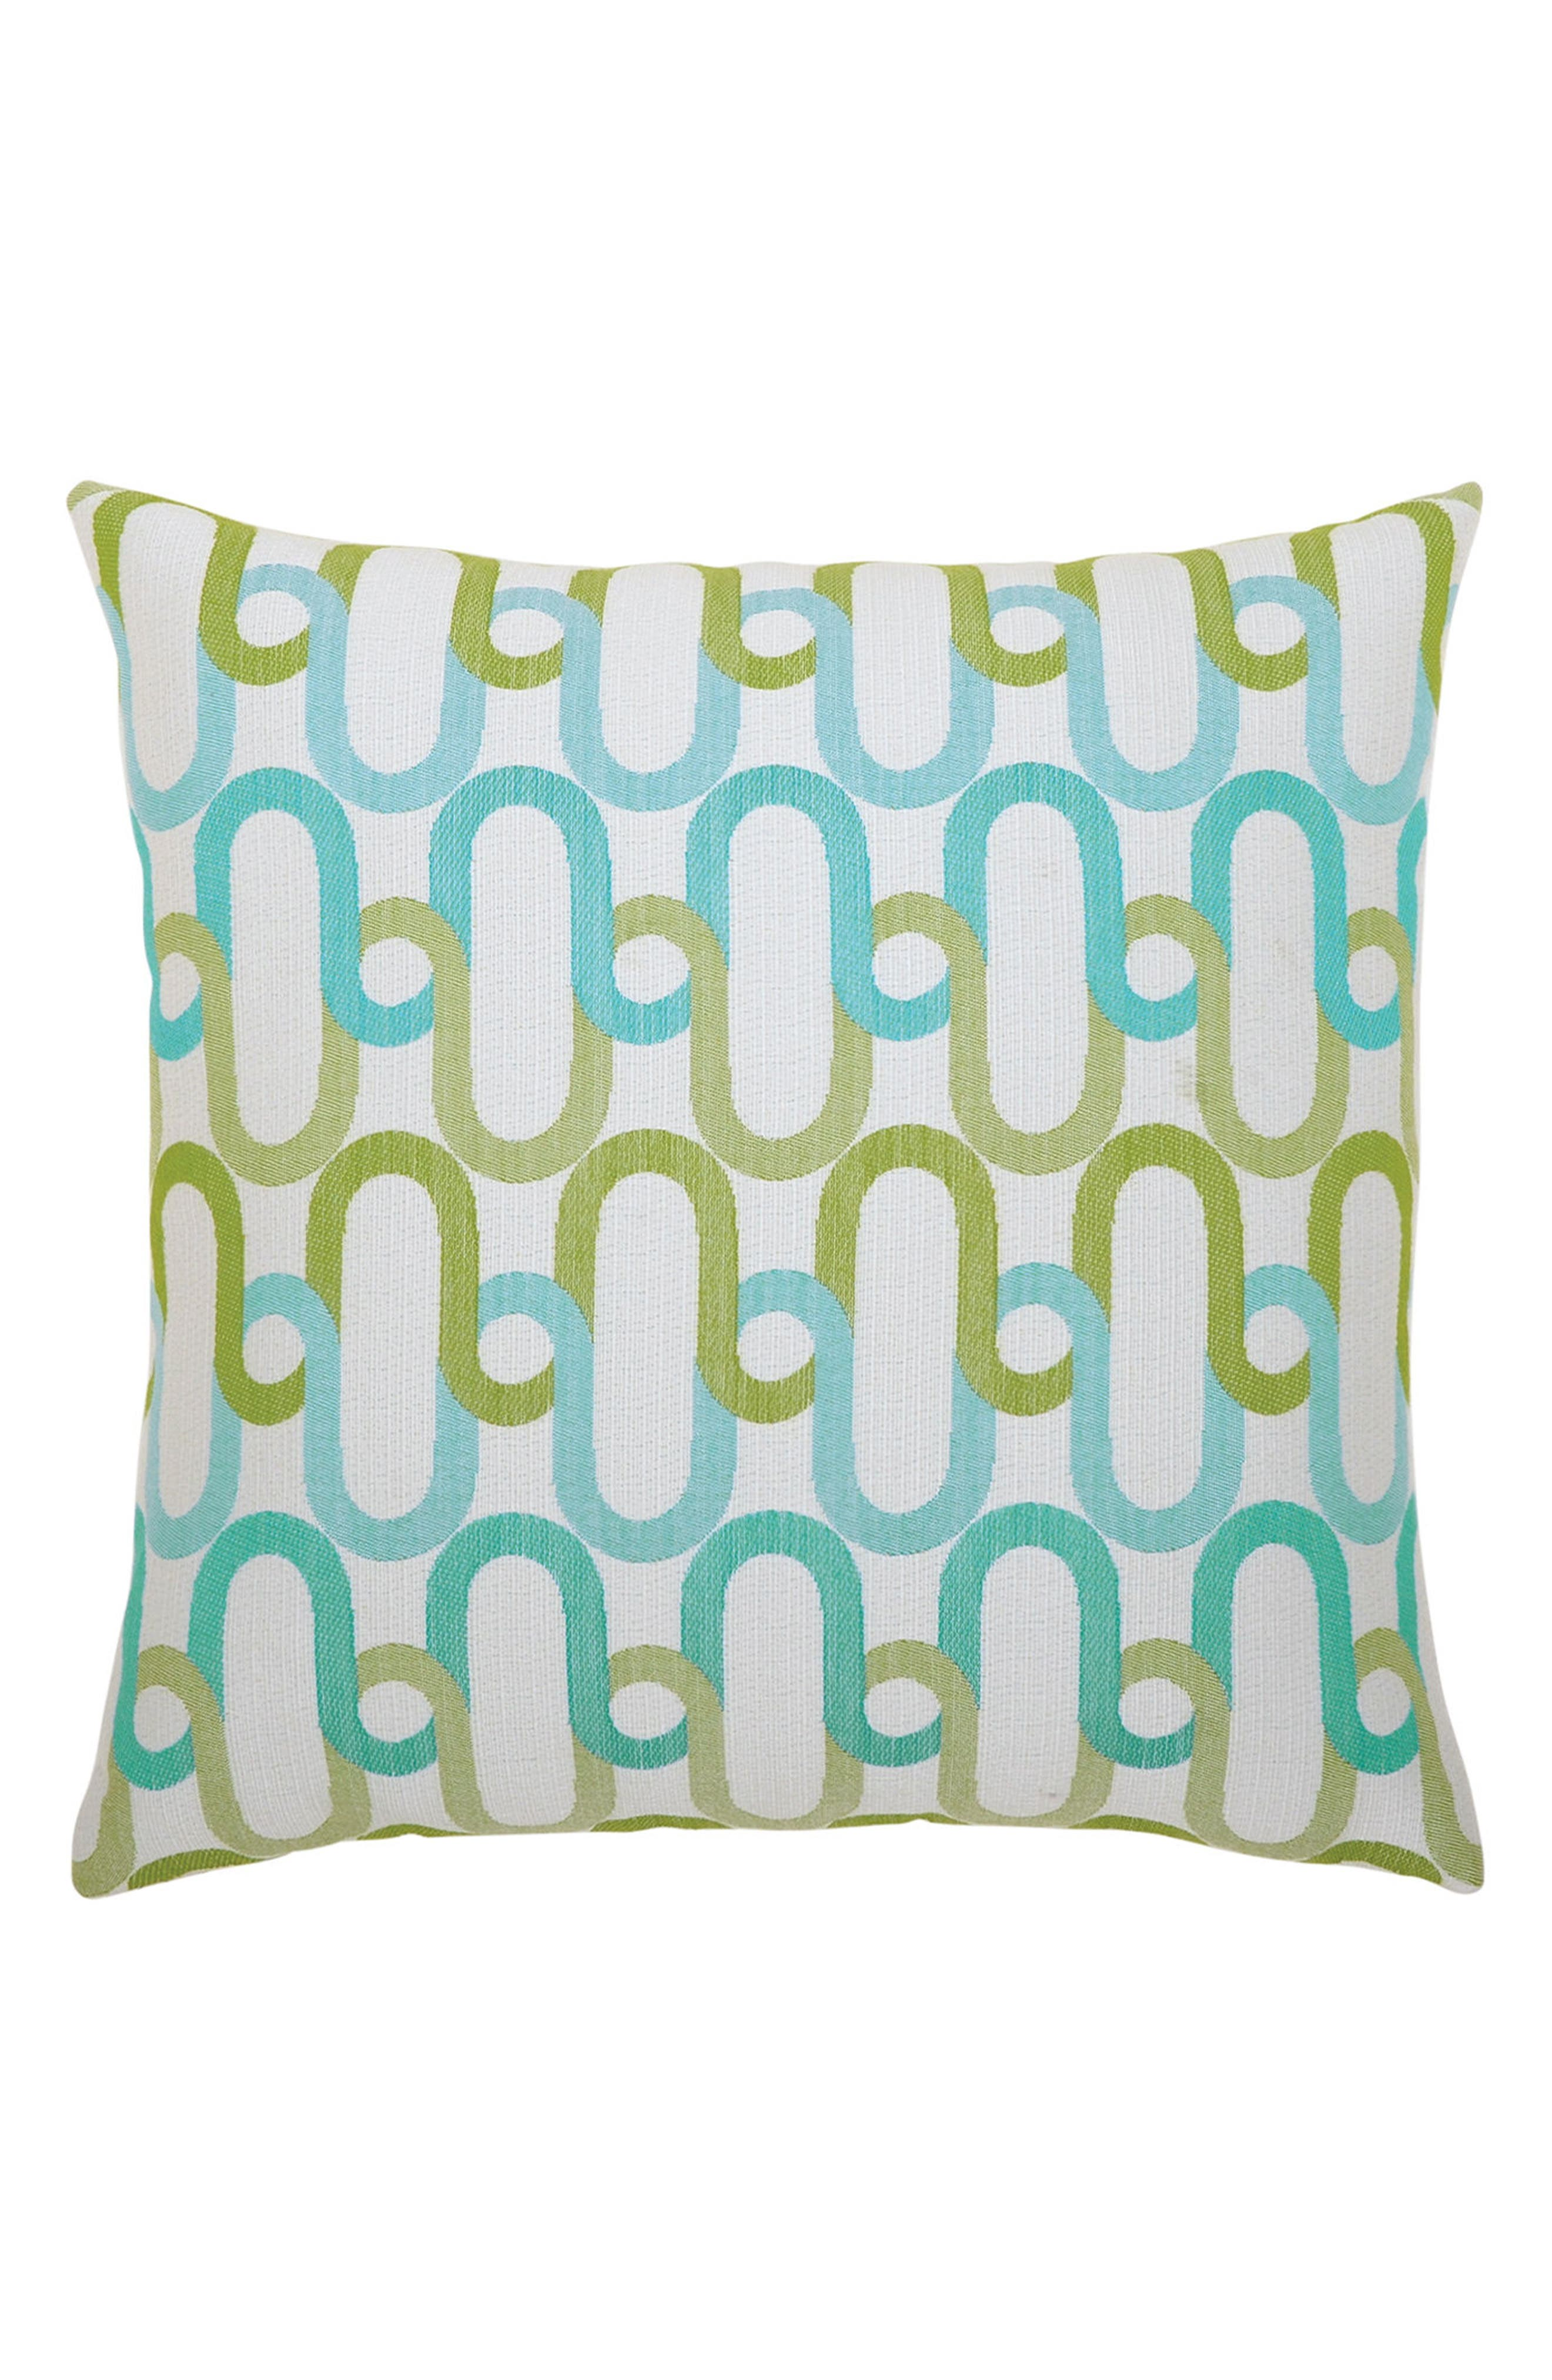 Poolside Link Indoor/Outdoor Accent Pillow,                             Main thumbnail 1, color,                             BLUE/ GREEN